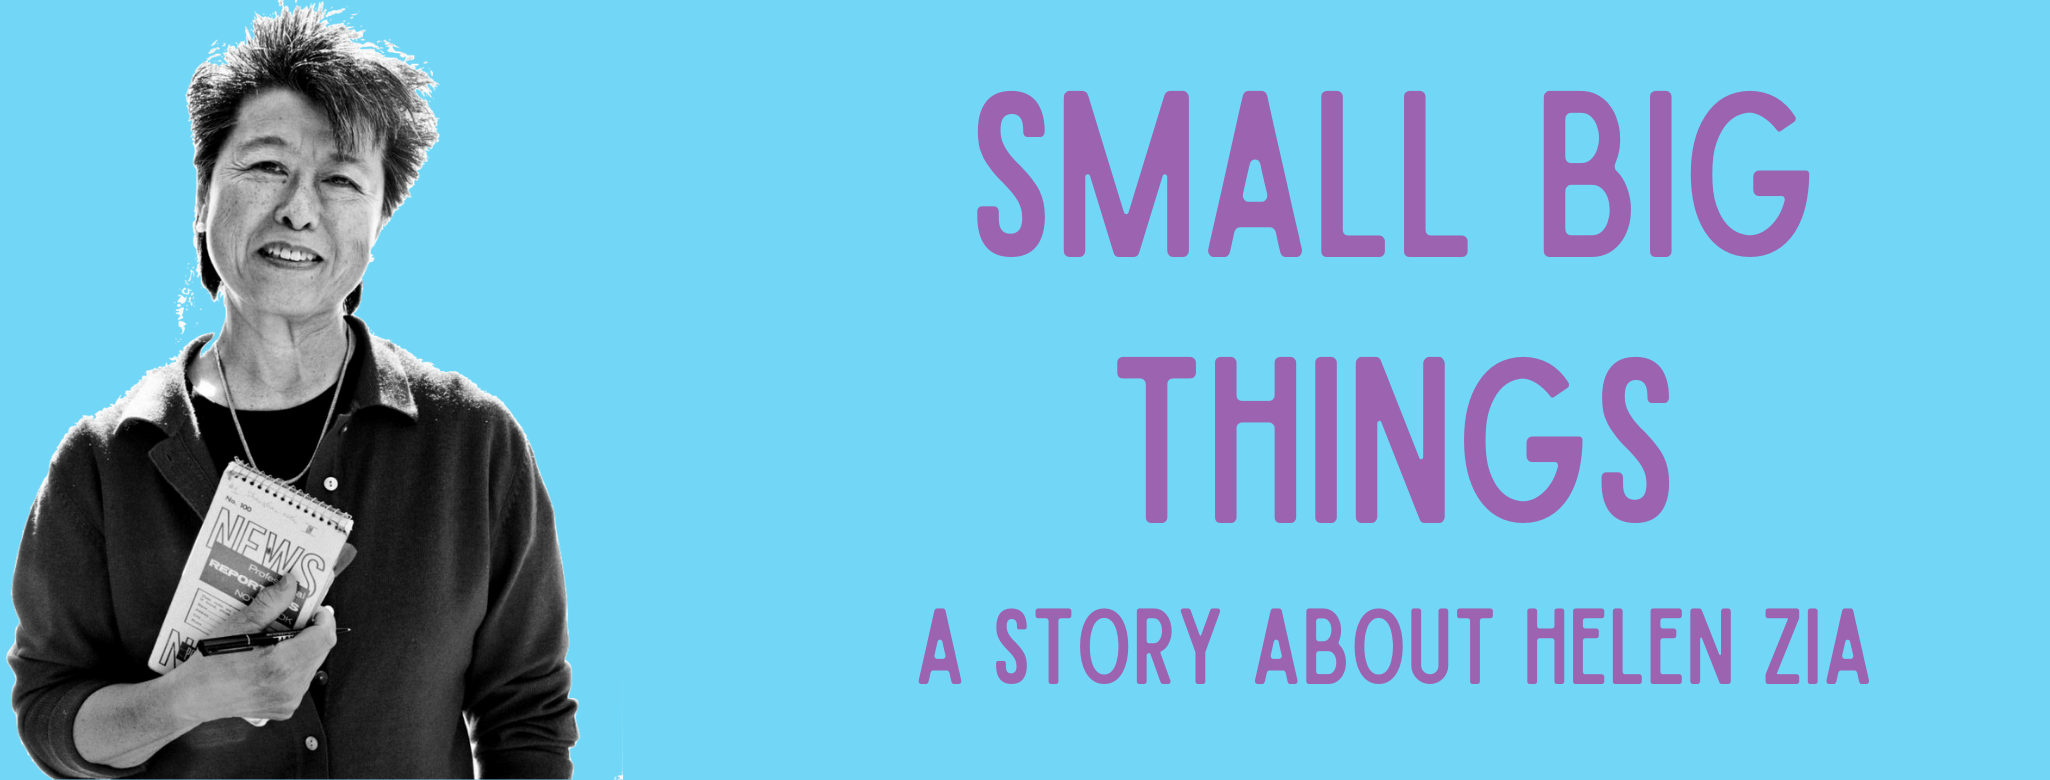 Small Big Things: A Story About Helen Zia